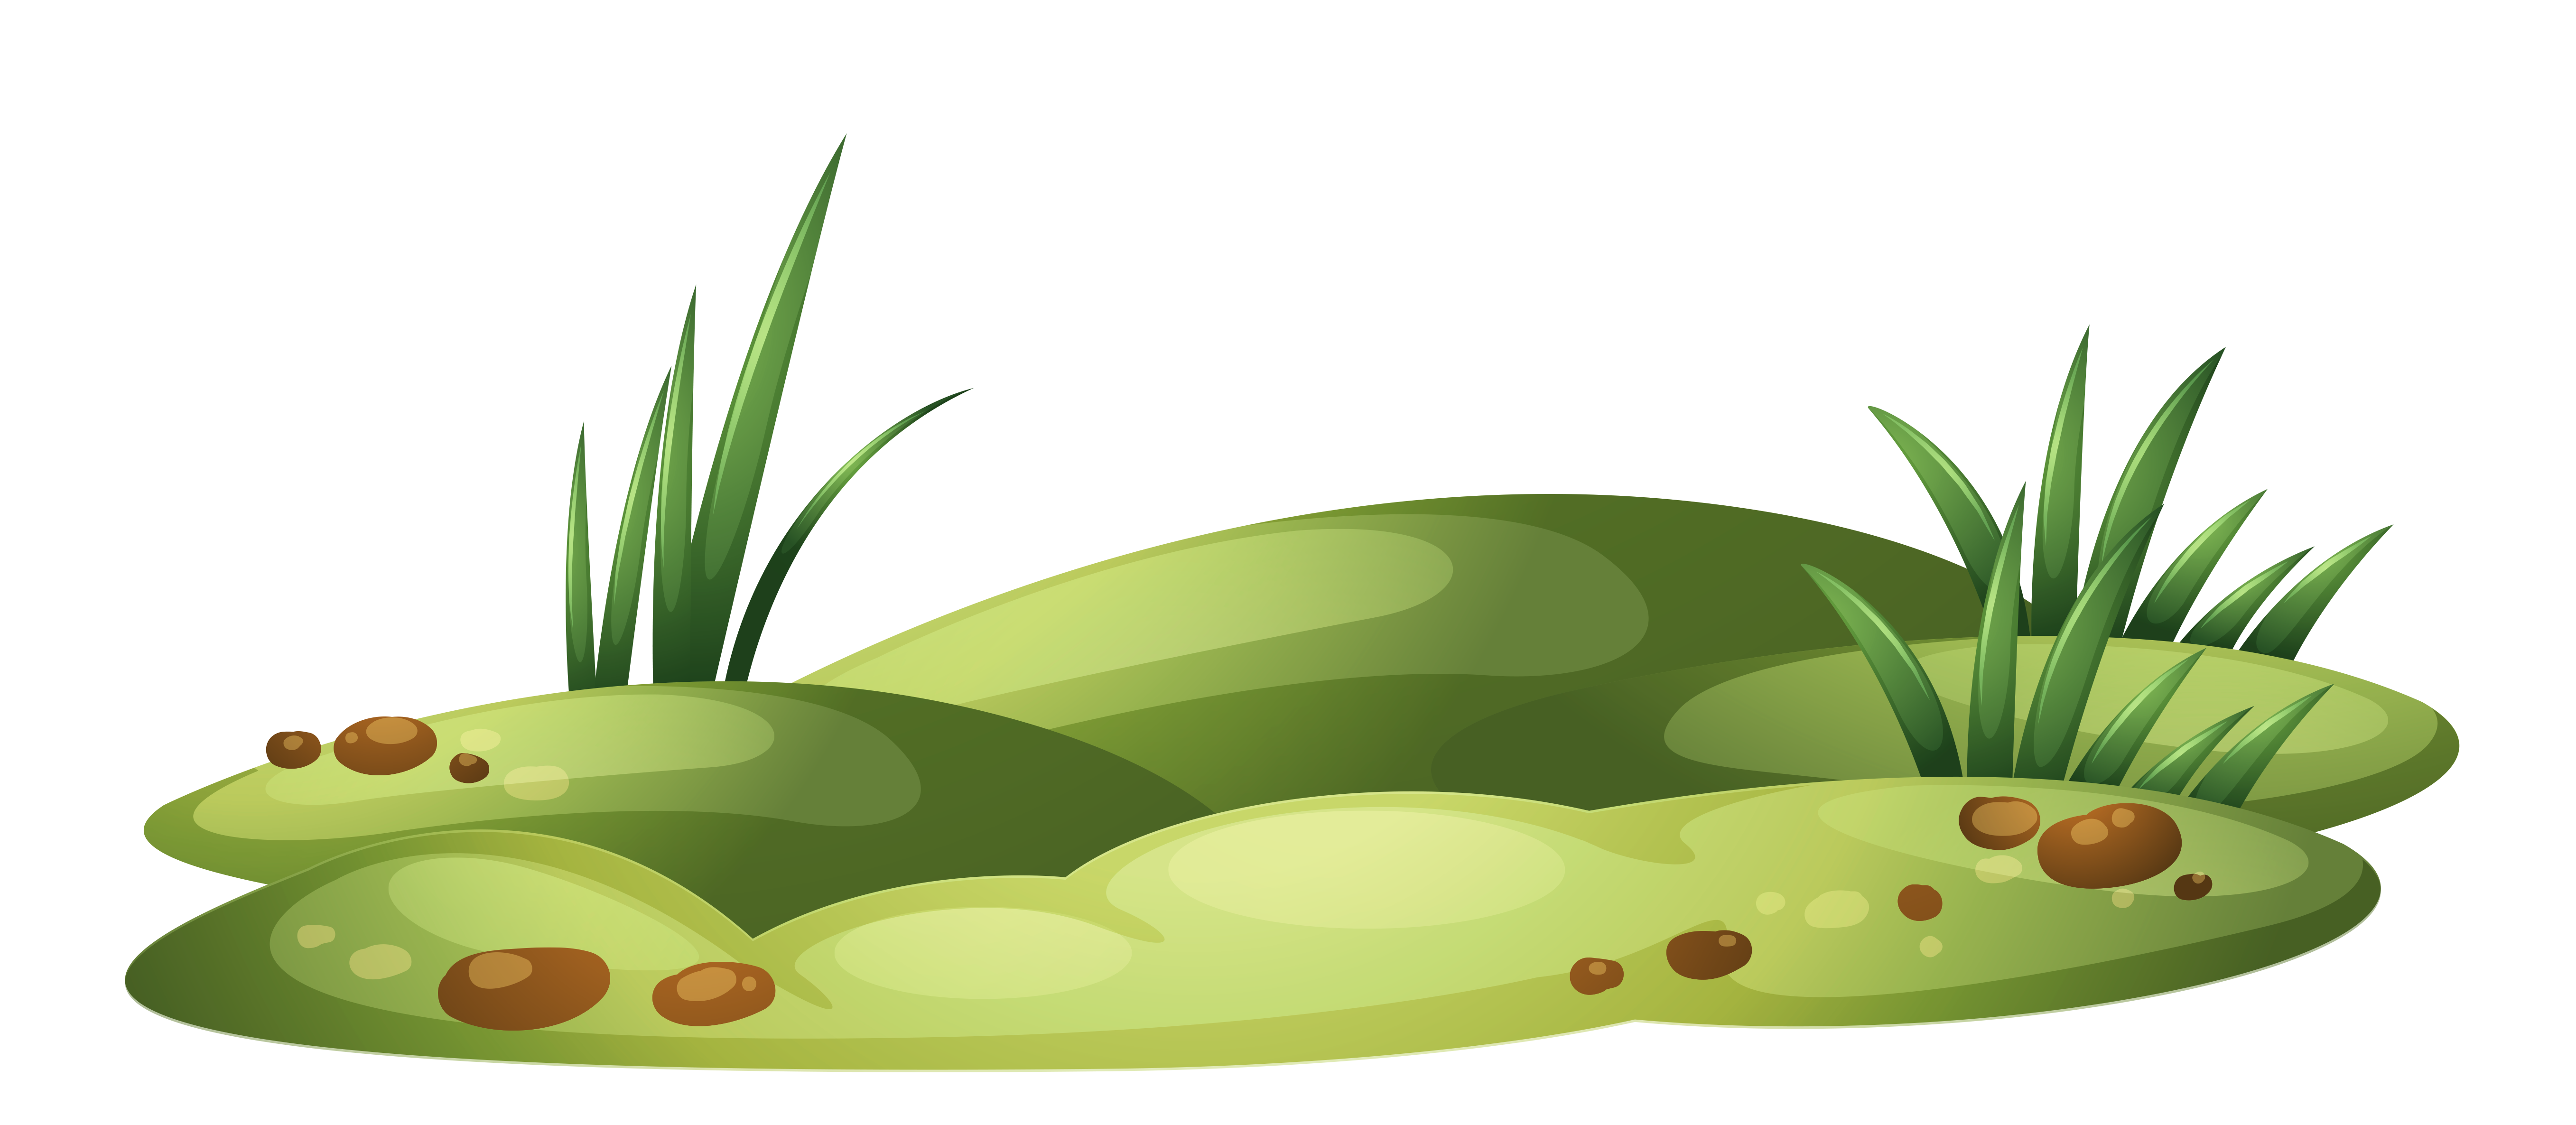 Patch with transparent png. Clipart grass illustration